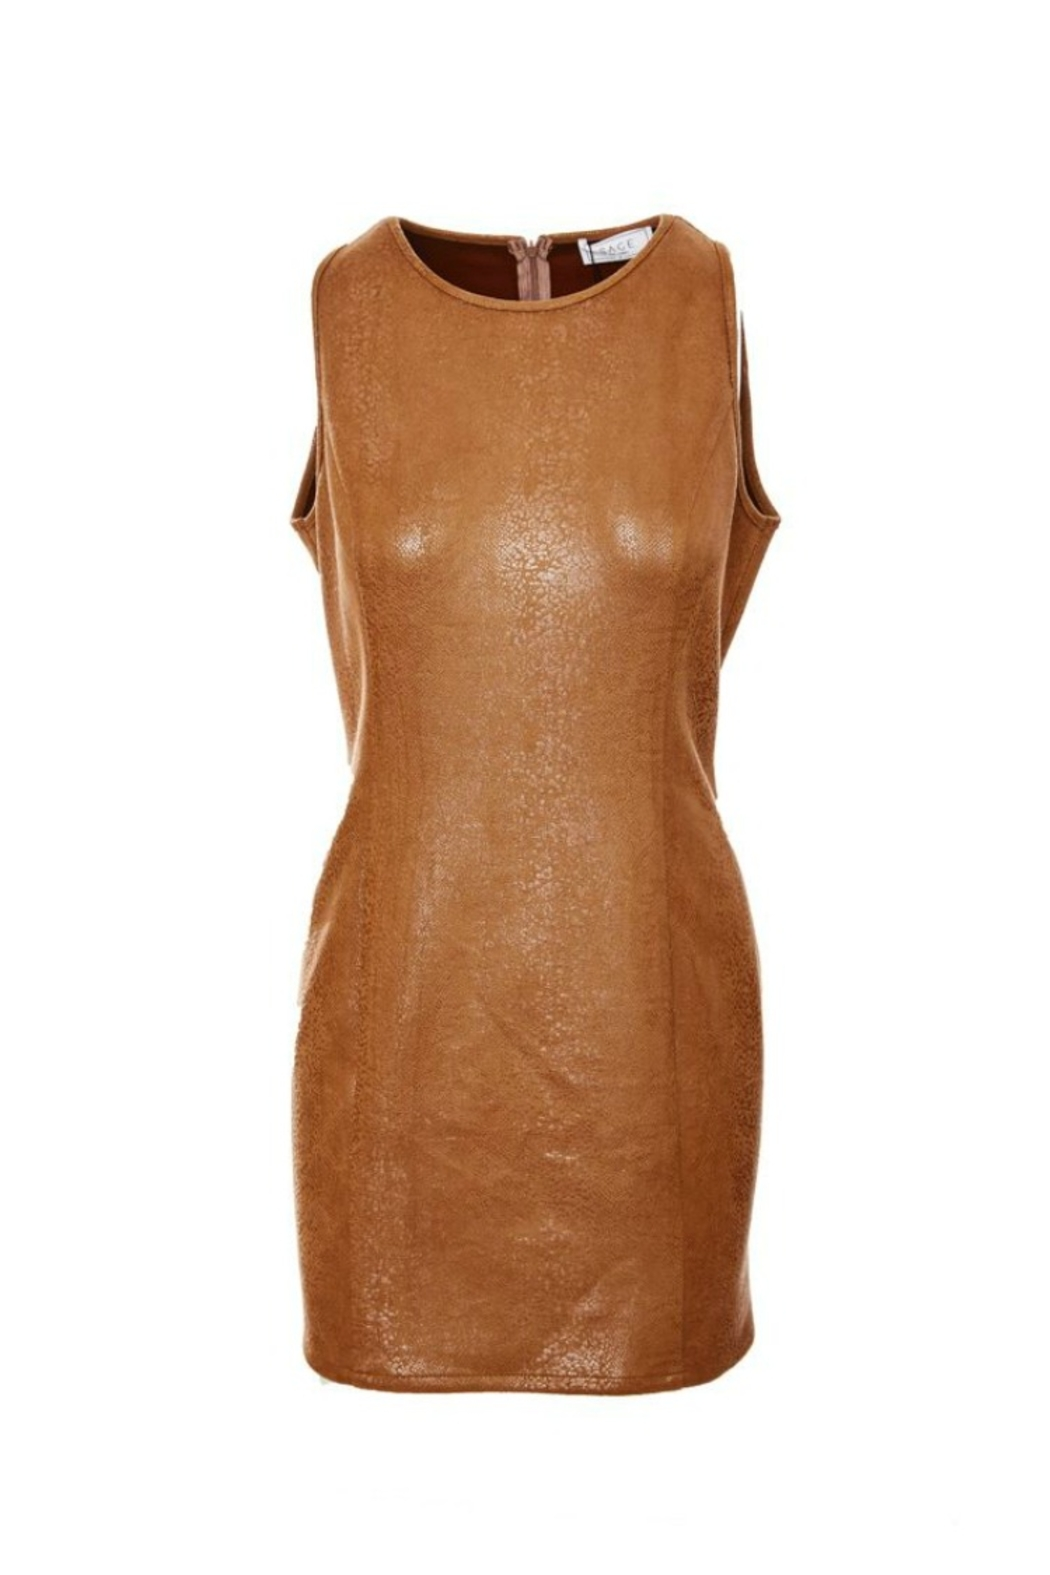 SAGE THE LABEL Stare' Mesto Body Con Dress - Front Cropped Image